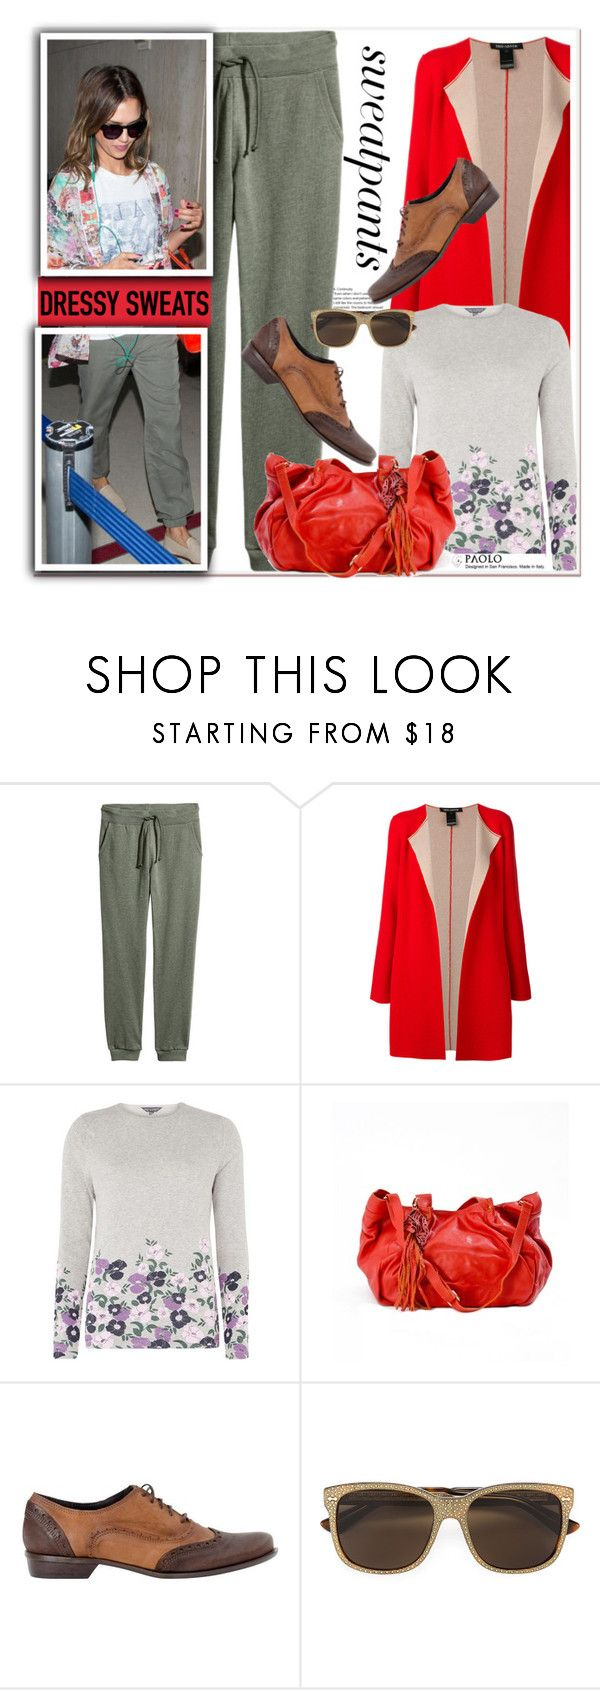 """""""Comfort is Key: Sweatpants and PaoloShoes"""" by spenderellastyle ❤ liked on Polyvore featuring IRIS VON ARNIM, Dorothy Perkins, Oxford, Gucci and sweatpants"""